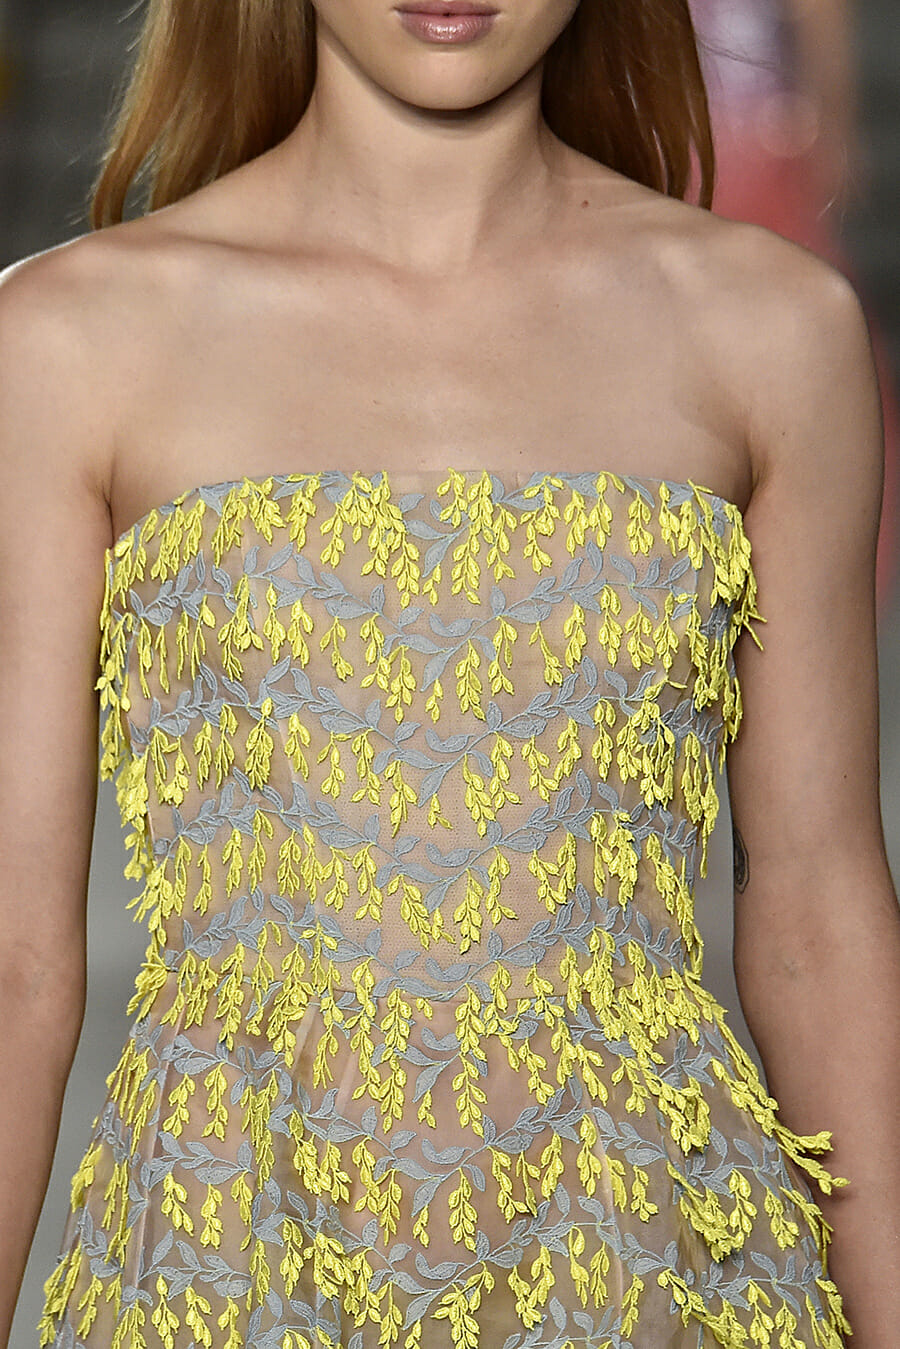 Carolina-Herrera-New-York-Fashion-Week-Spring-Summer-2018-NY-September-2017-look-31-detail1